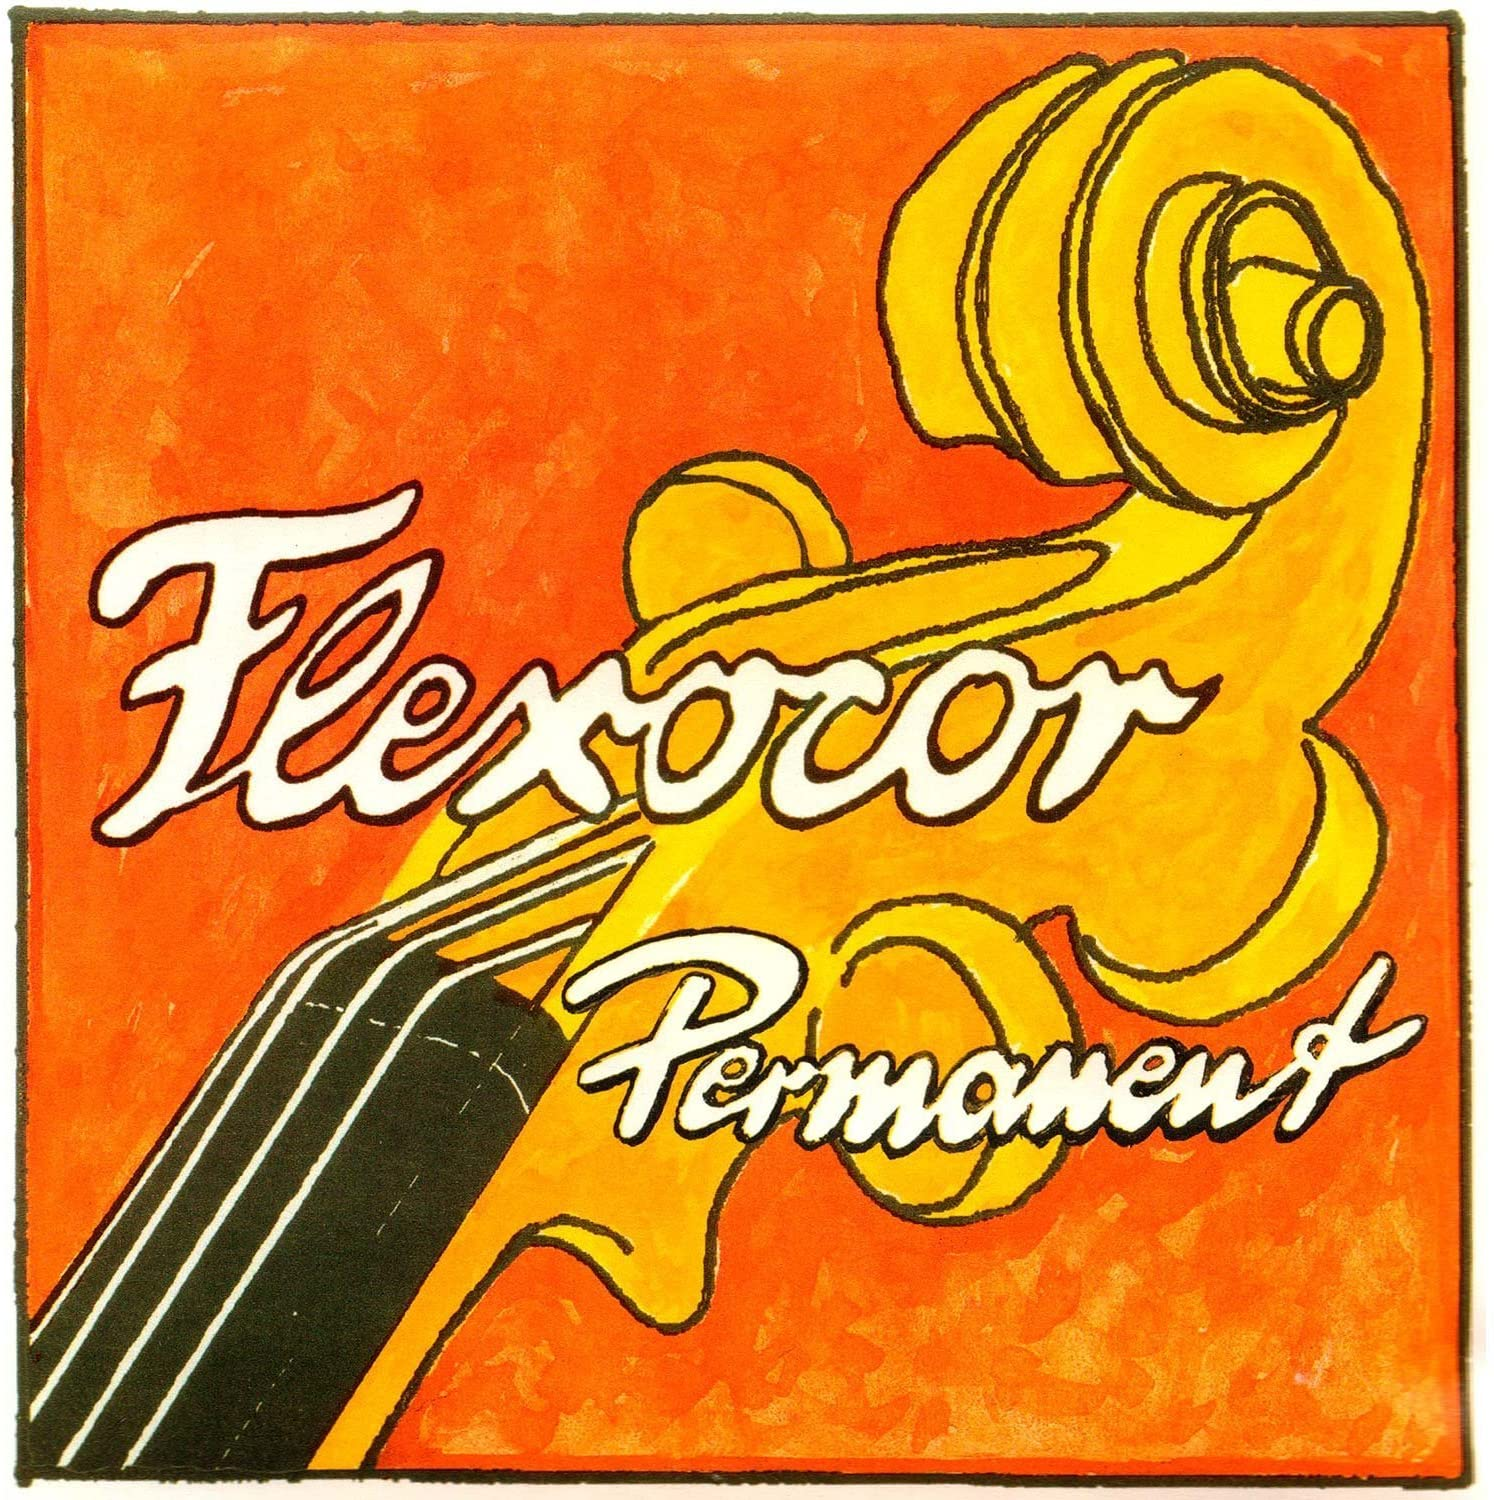 Flexocor Perm Violin A String Rope/Alum